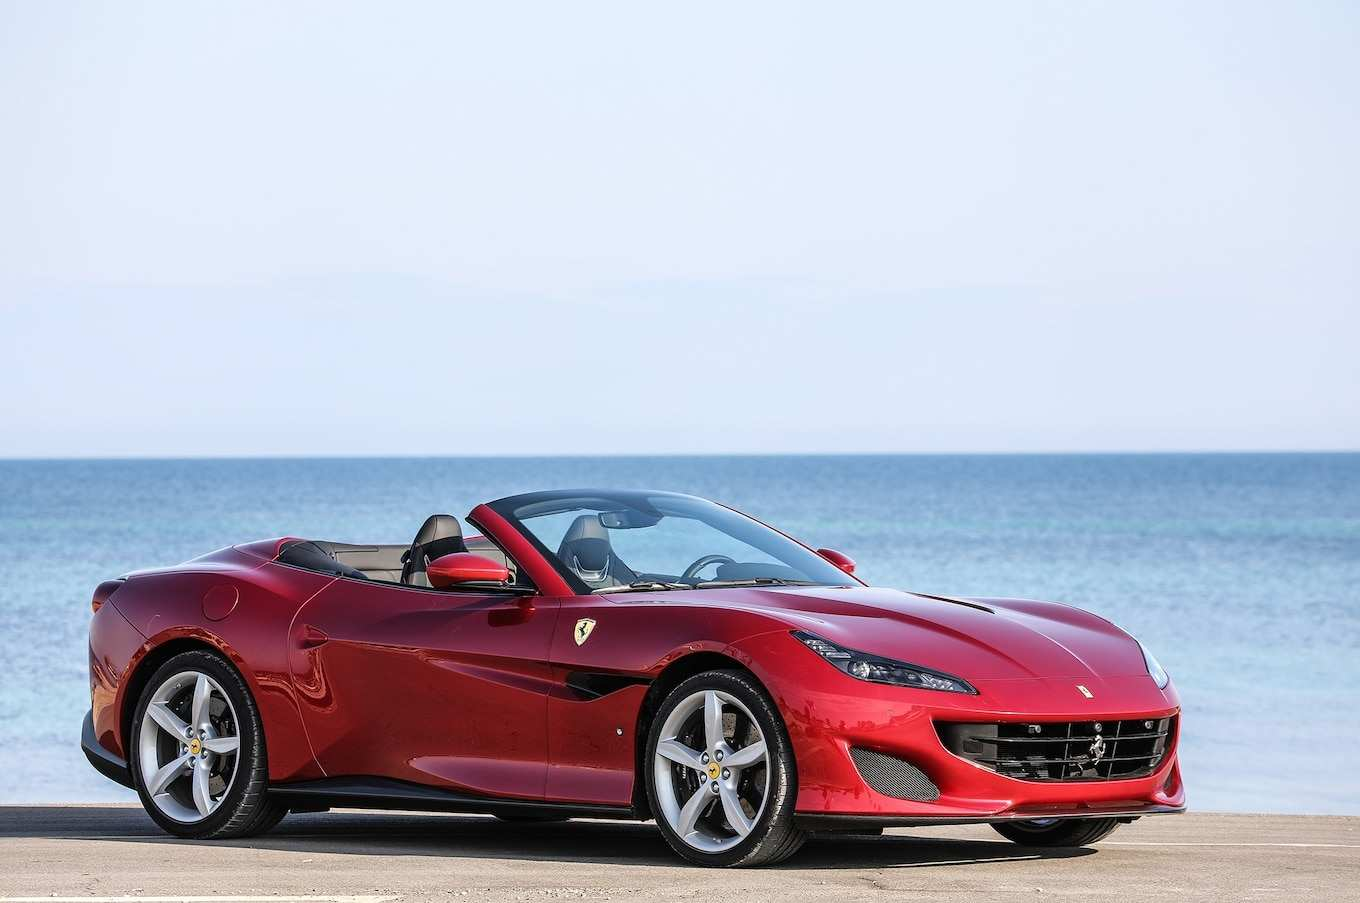 79 New 2019 Ferrari California Price Pictures for 2019 Ferrari California Price